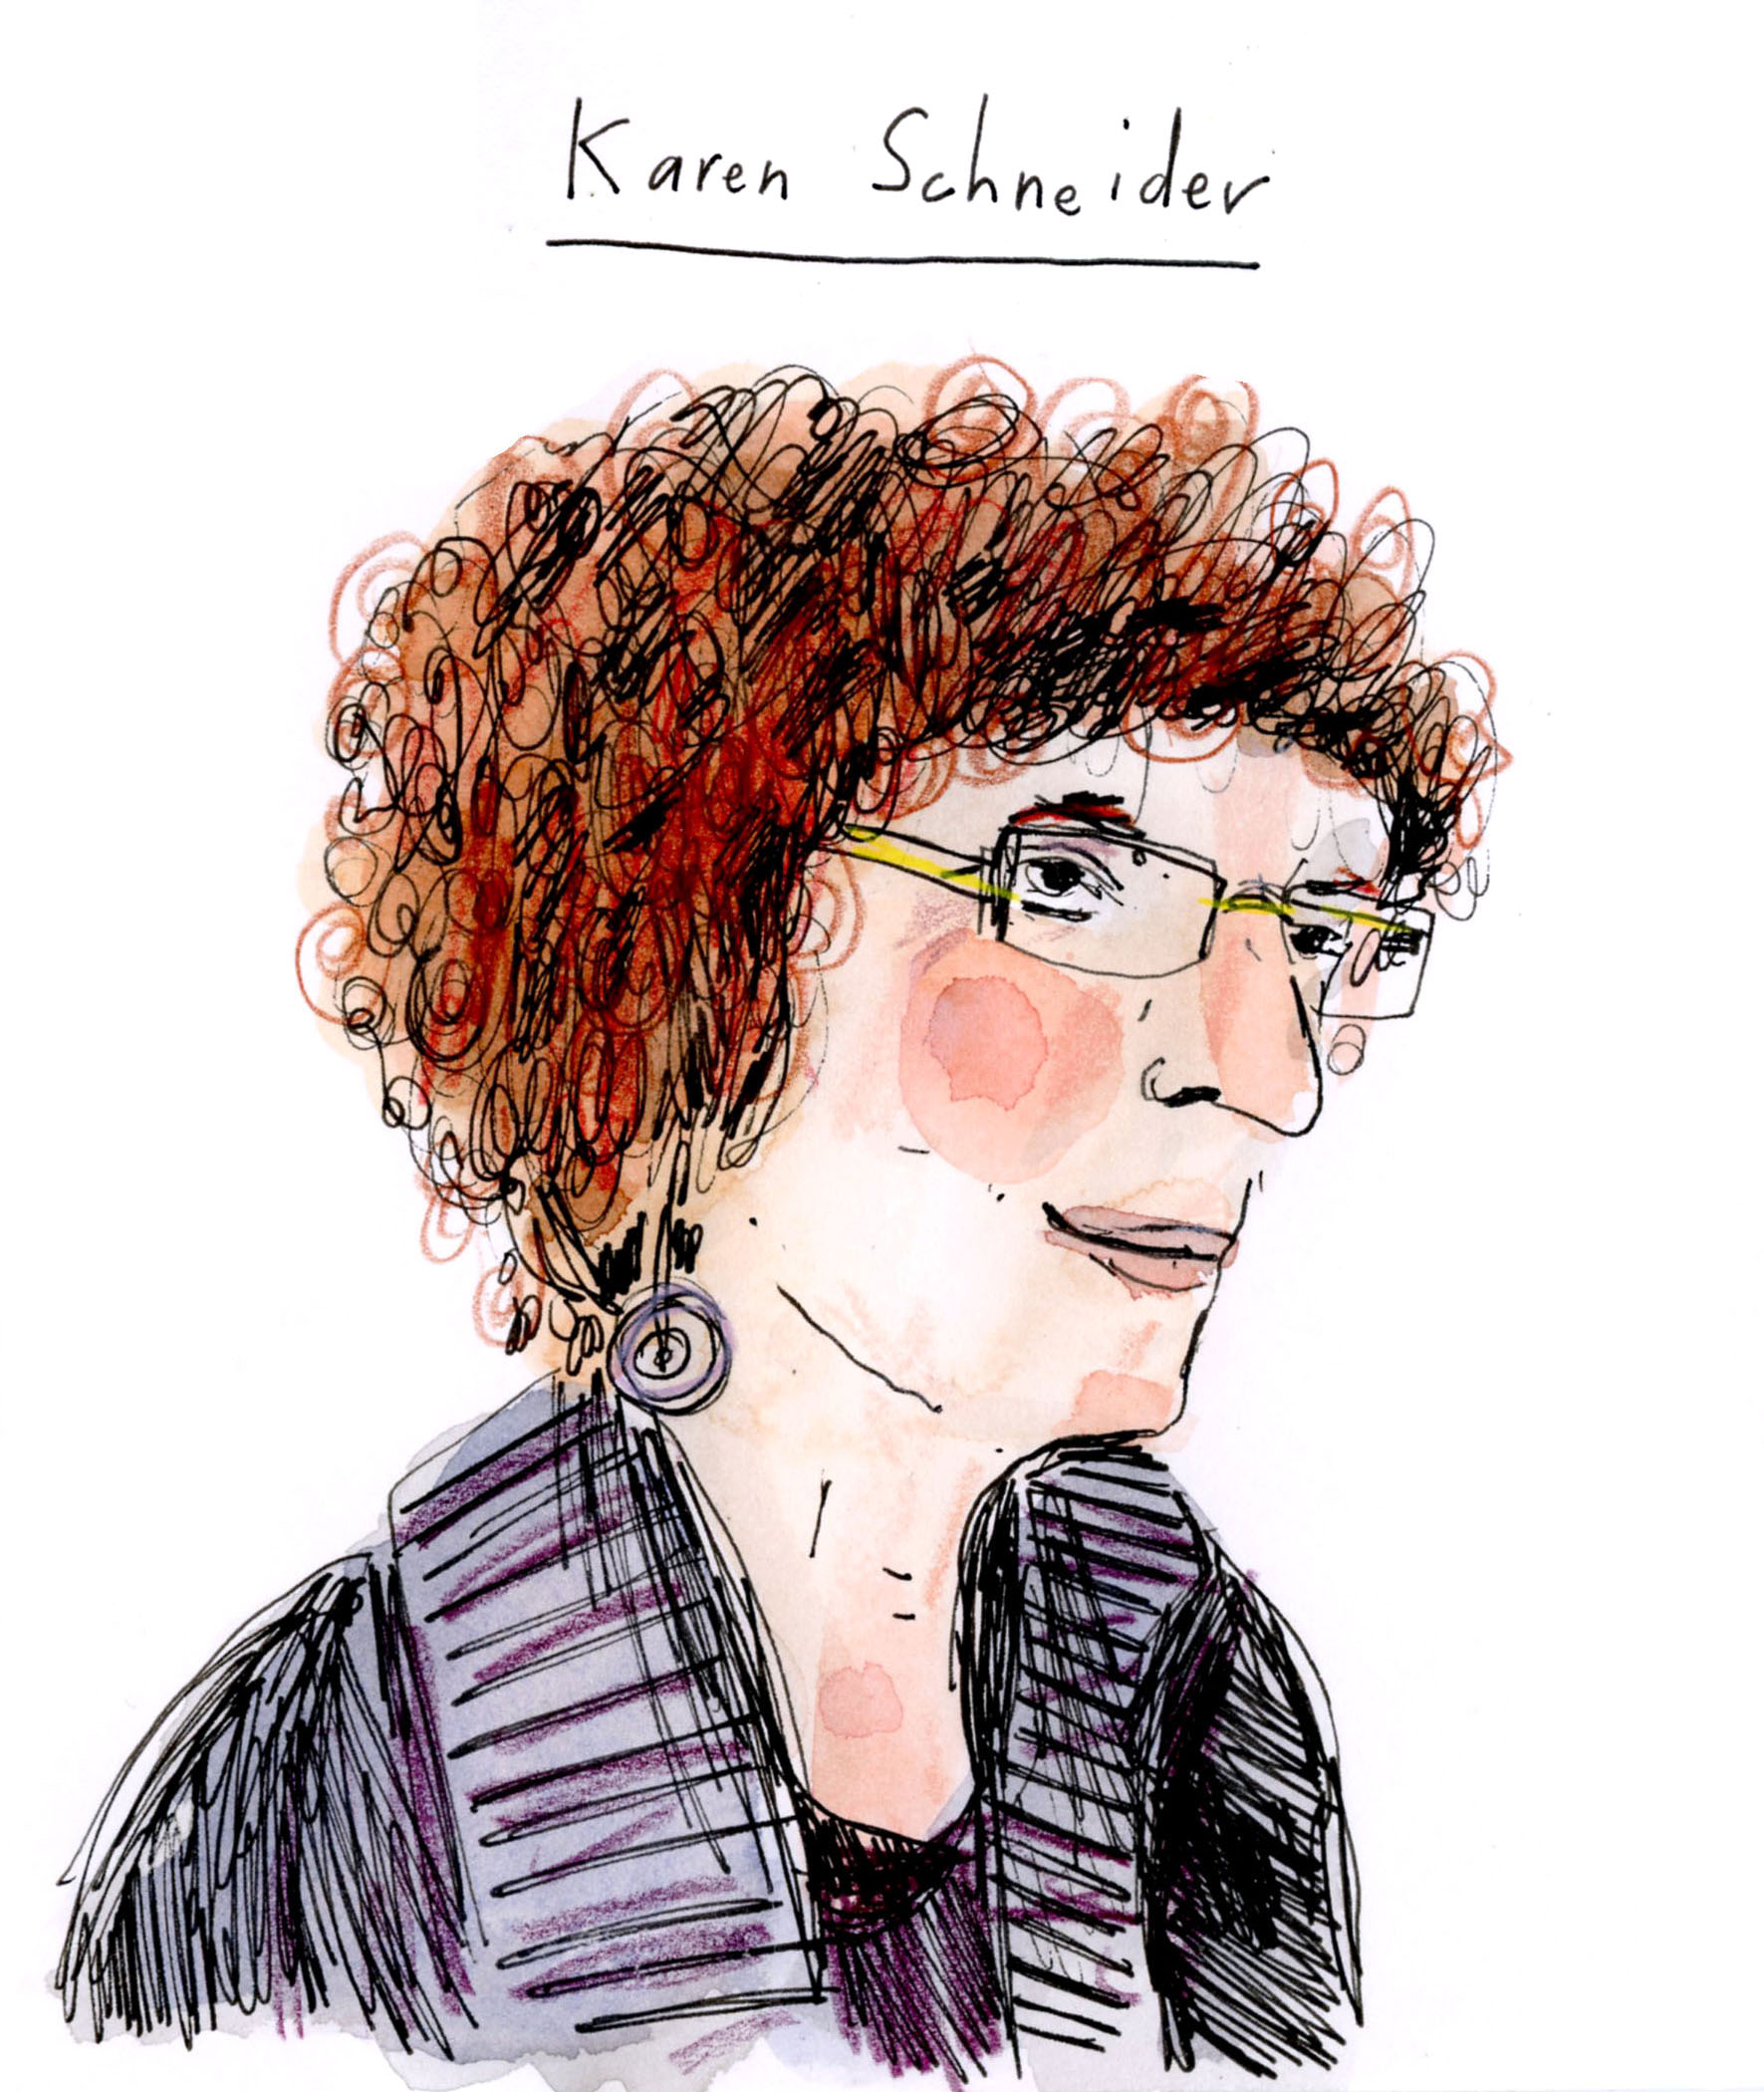 Drawing of Karen Schnieder